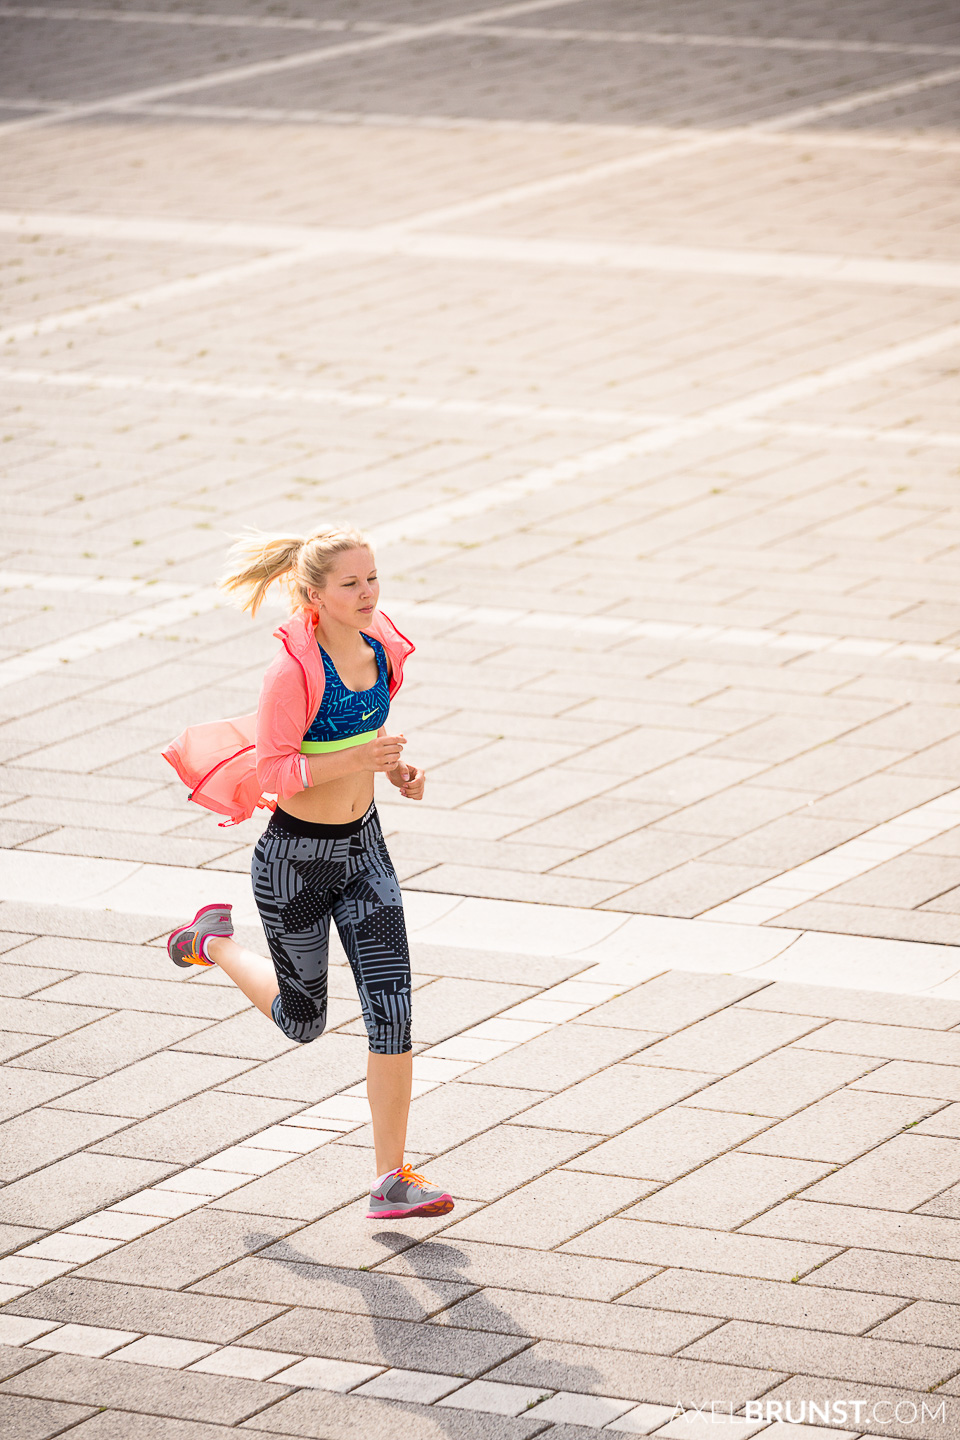 female-stuttgart-urban-running-7.jpg